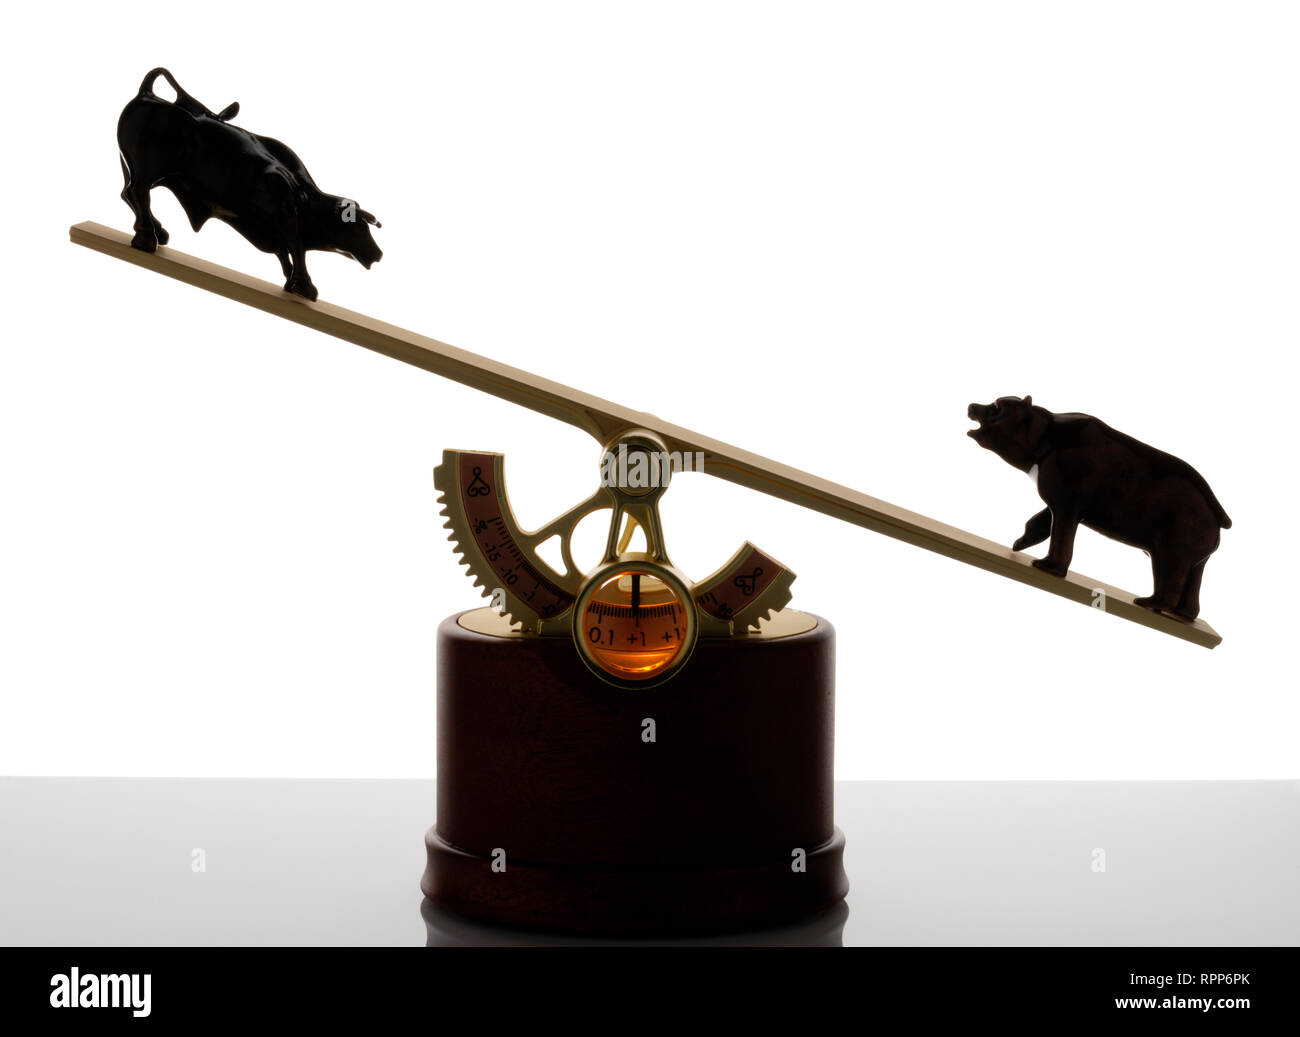 The Market, executive toy (!) that displays the balance of the stockmarket. Bull and bear at opposing ends of a see-saw. - Stock Image